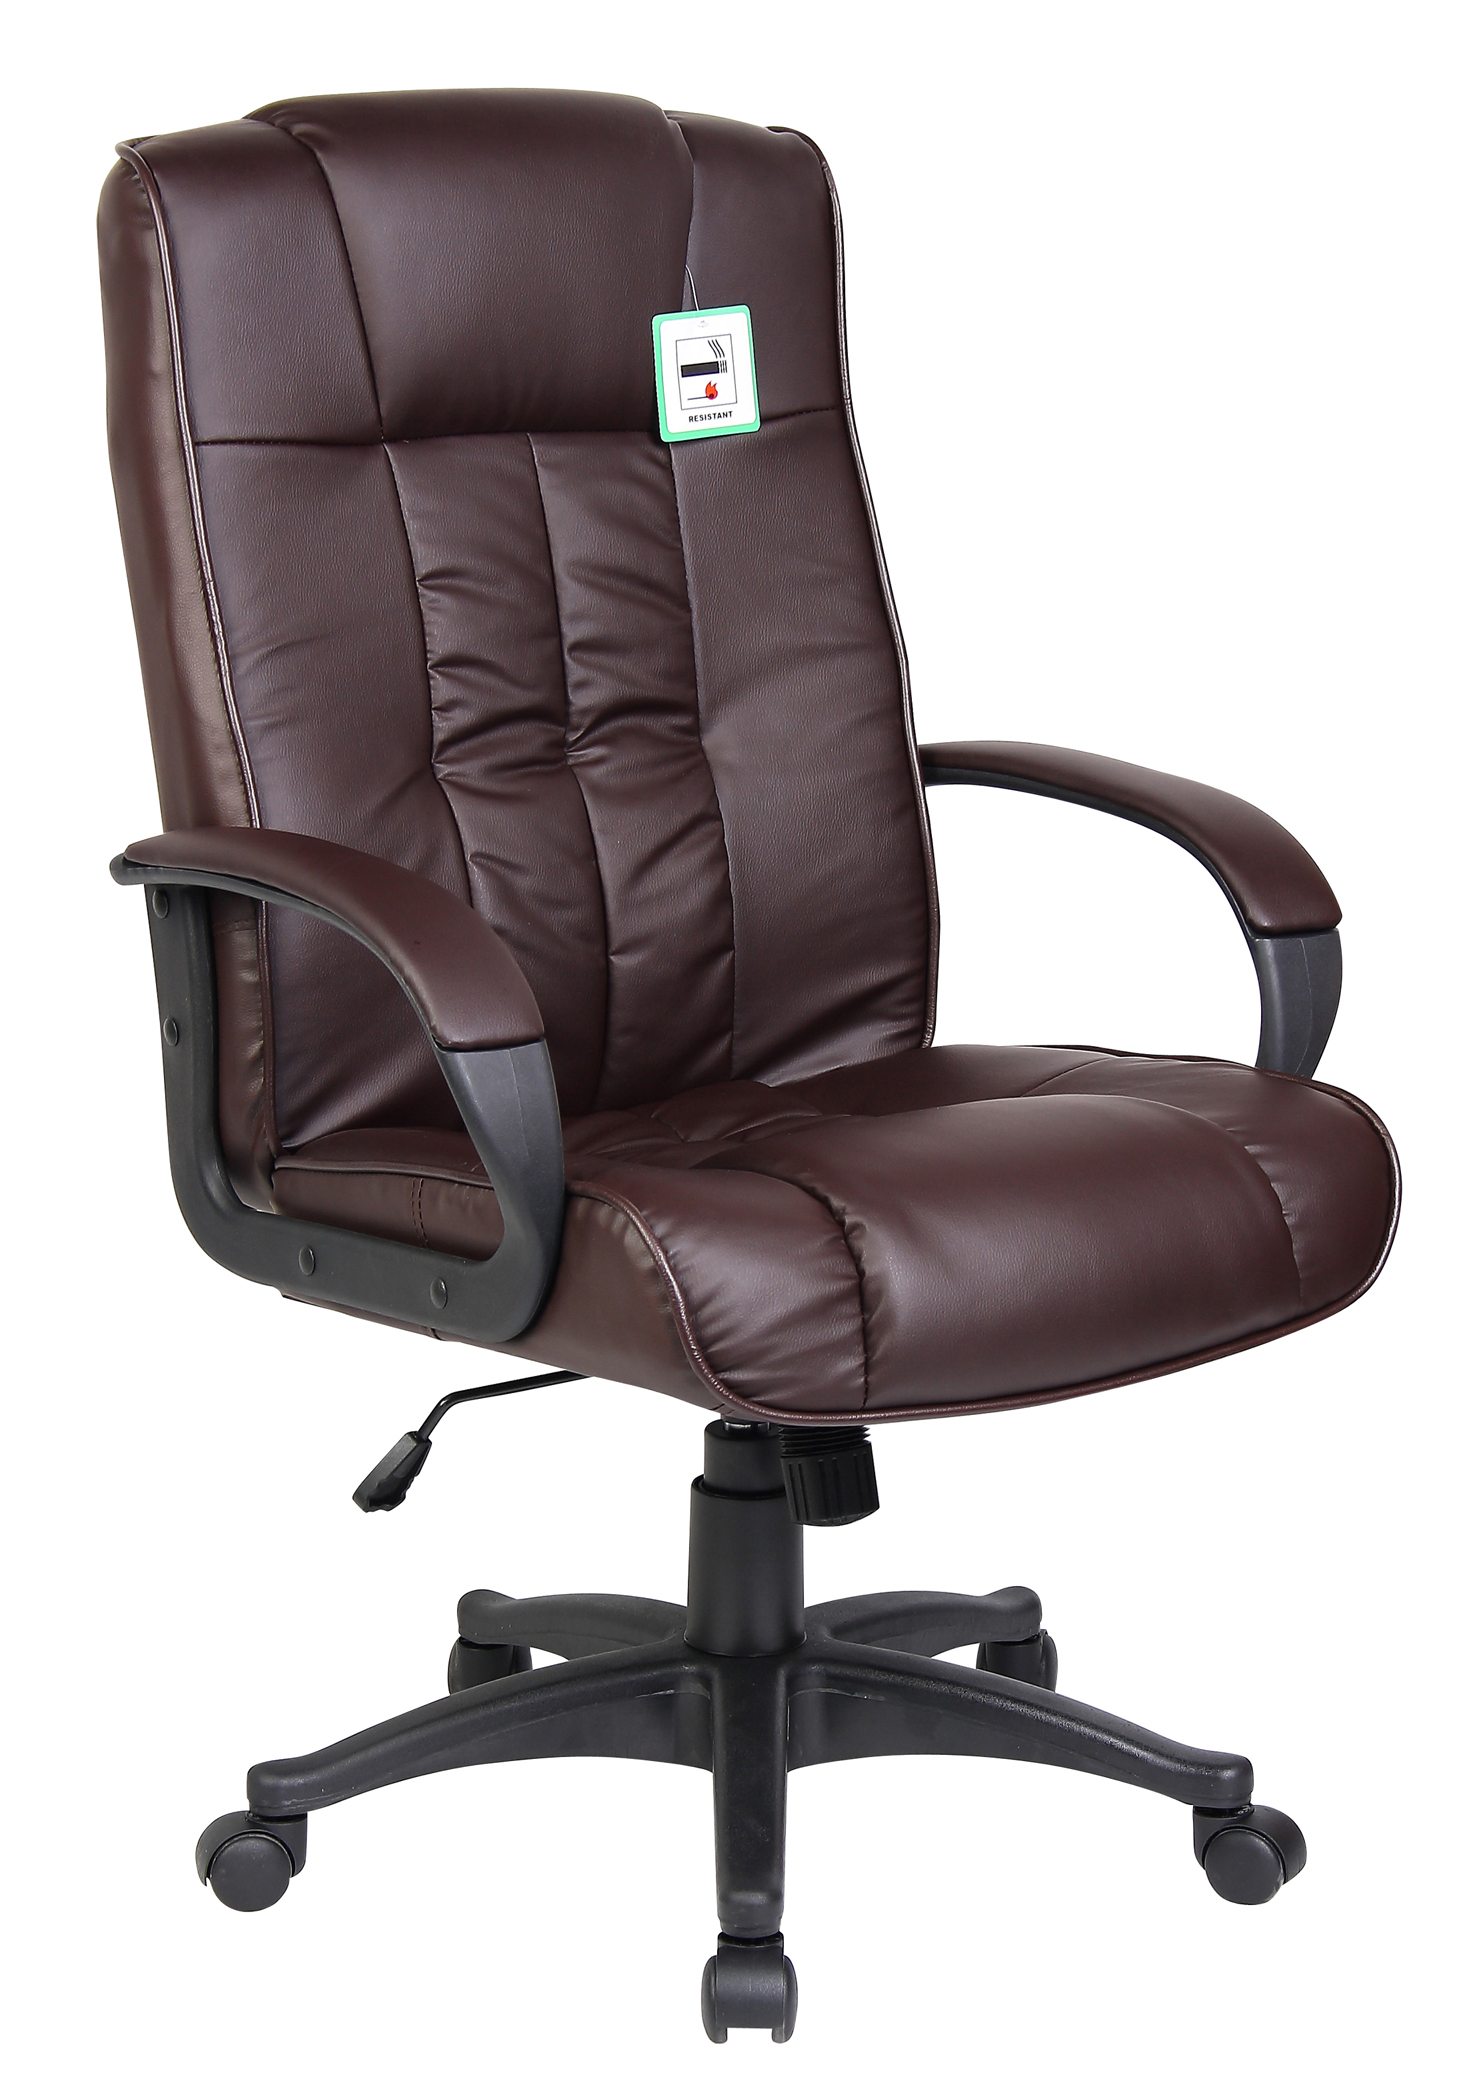 desk chair ebay uk hanging hammock from ceiling new swivel executive office furniture computer